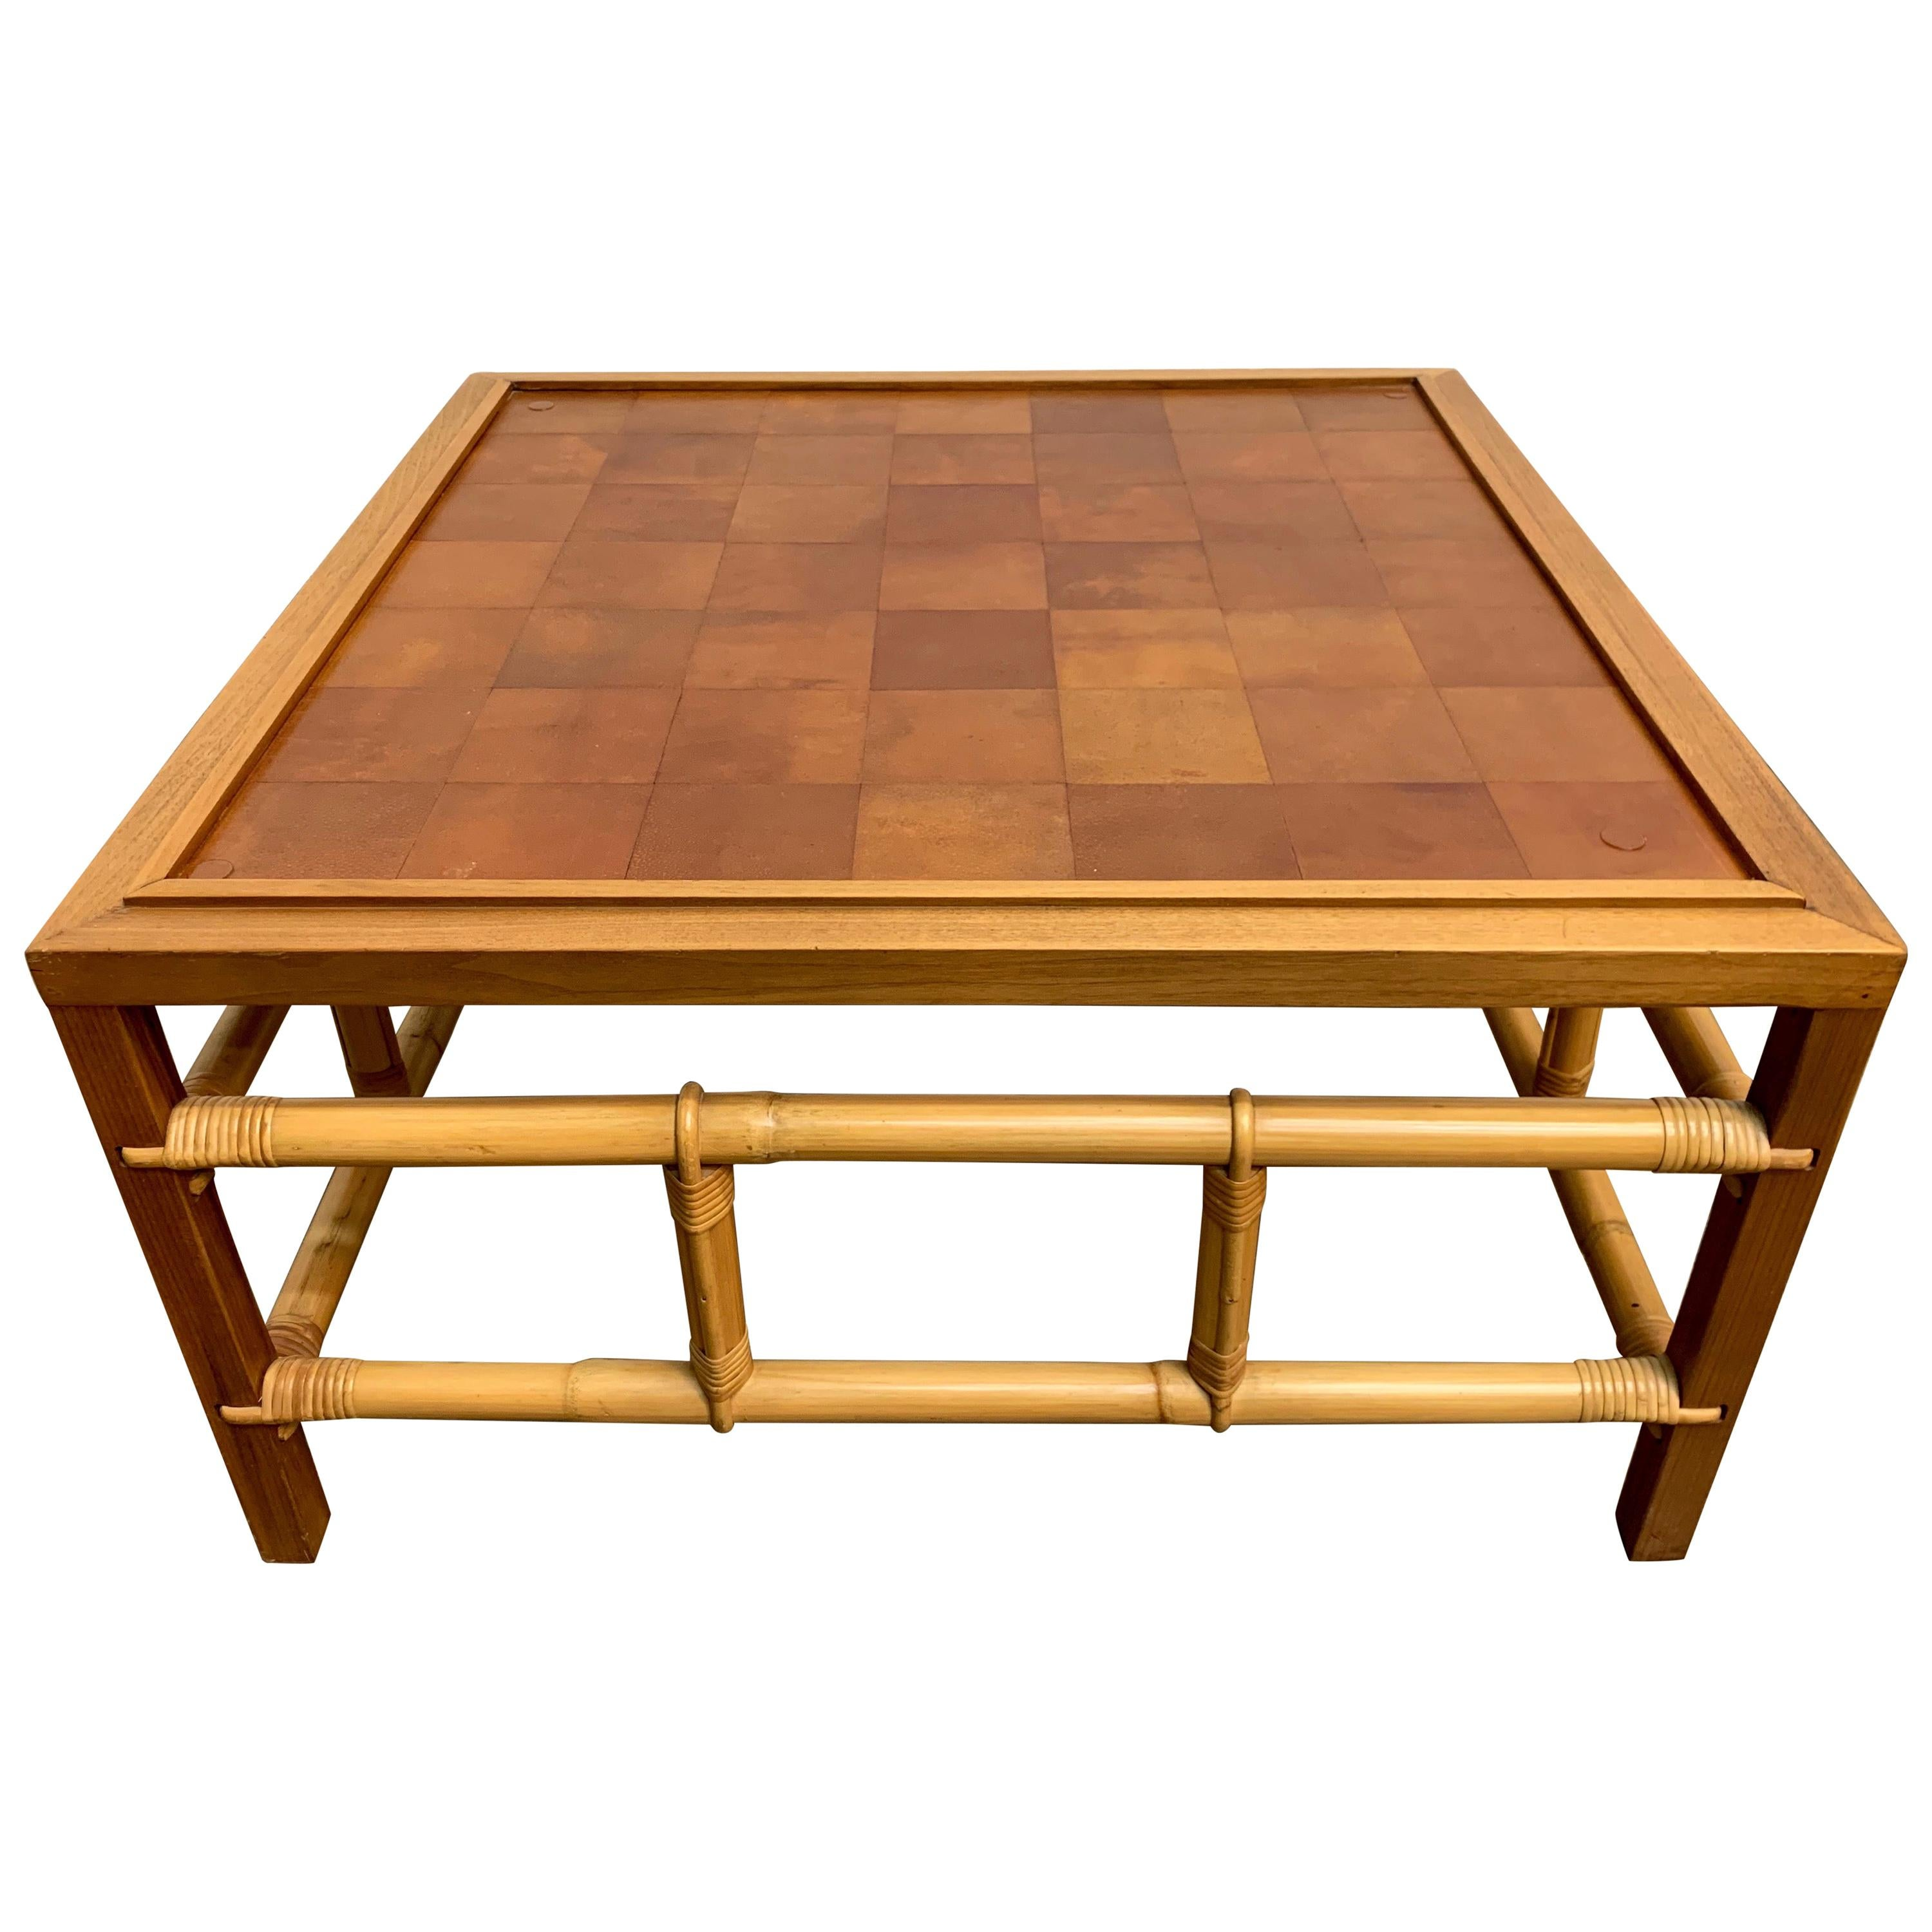 Fickes Reed Coffee Table with Patchwork Leather Top